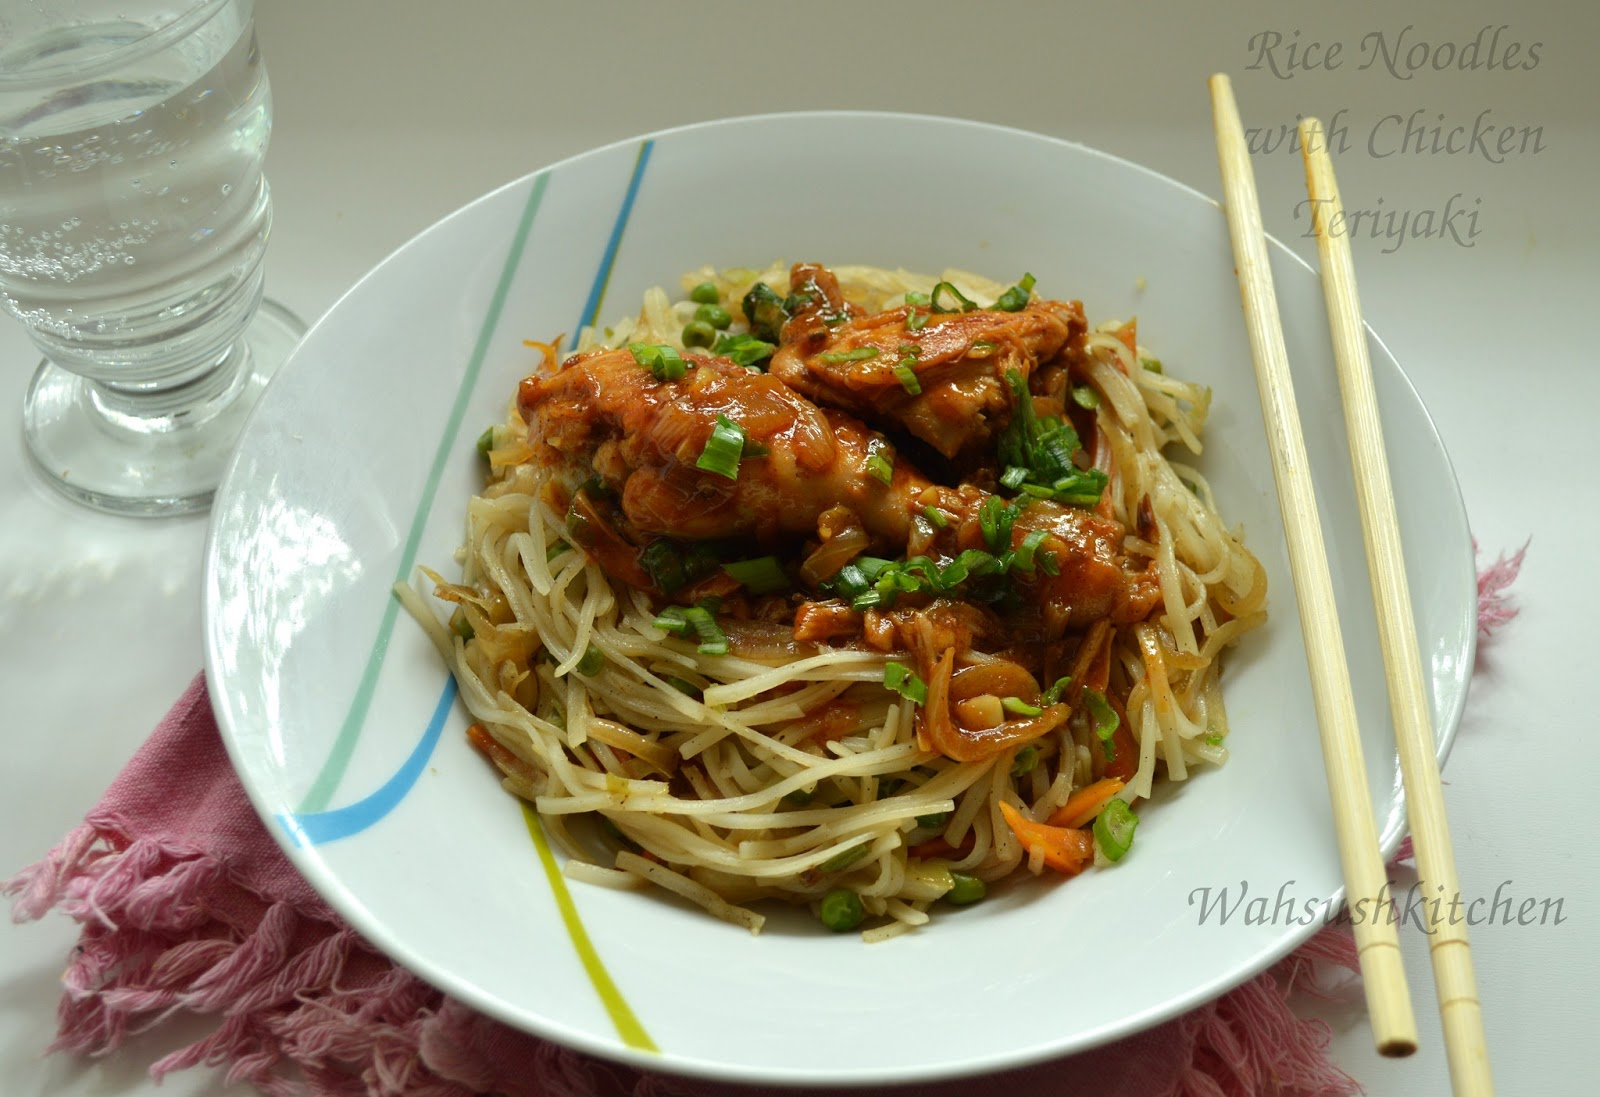 WahSush Kitchen: Chicken Teriyaki with Rice Noodles